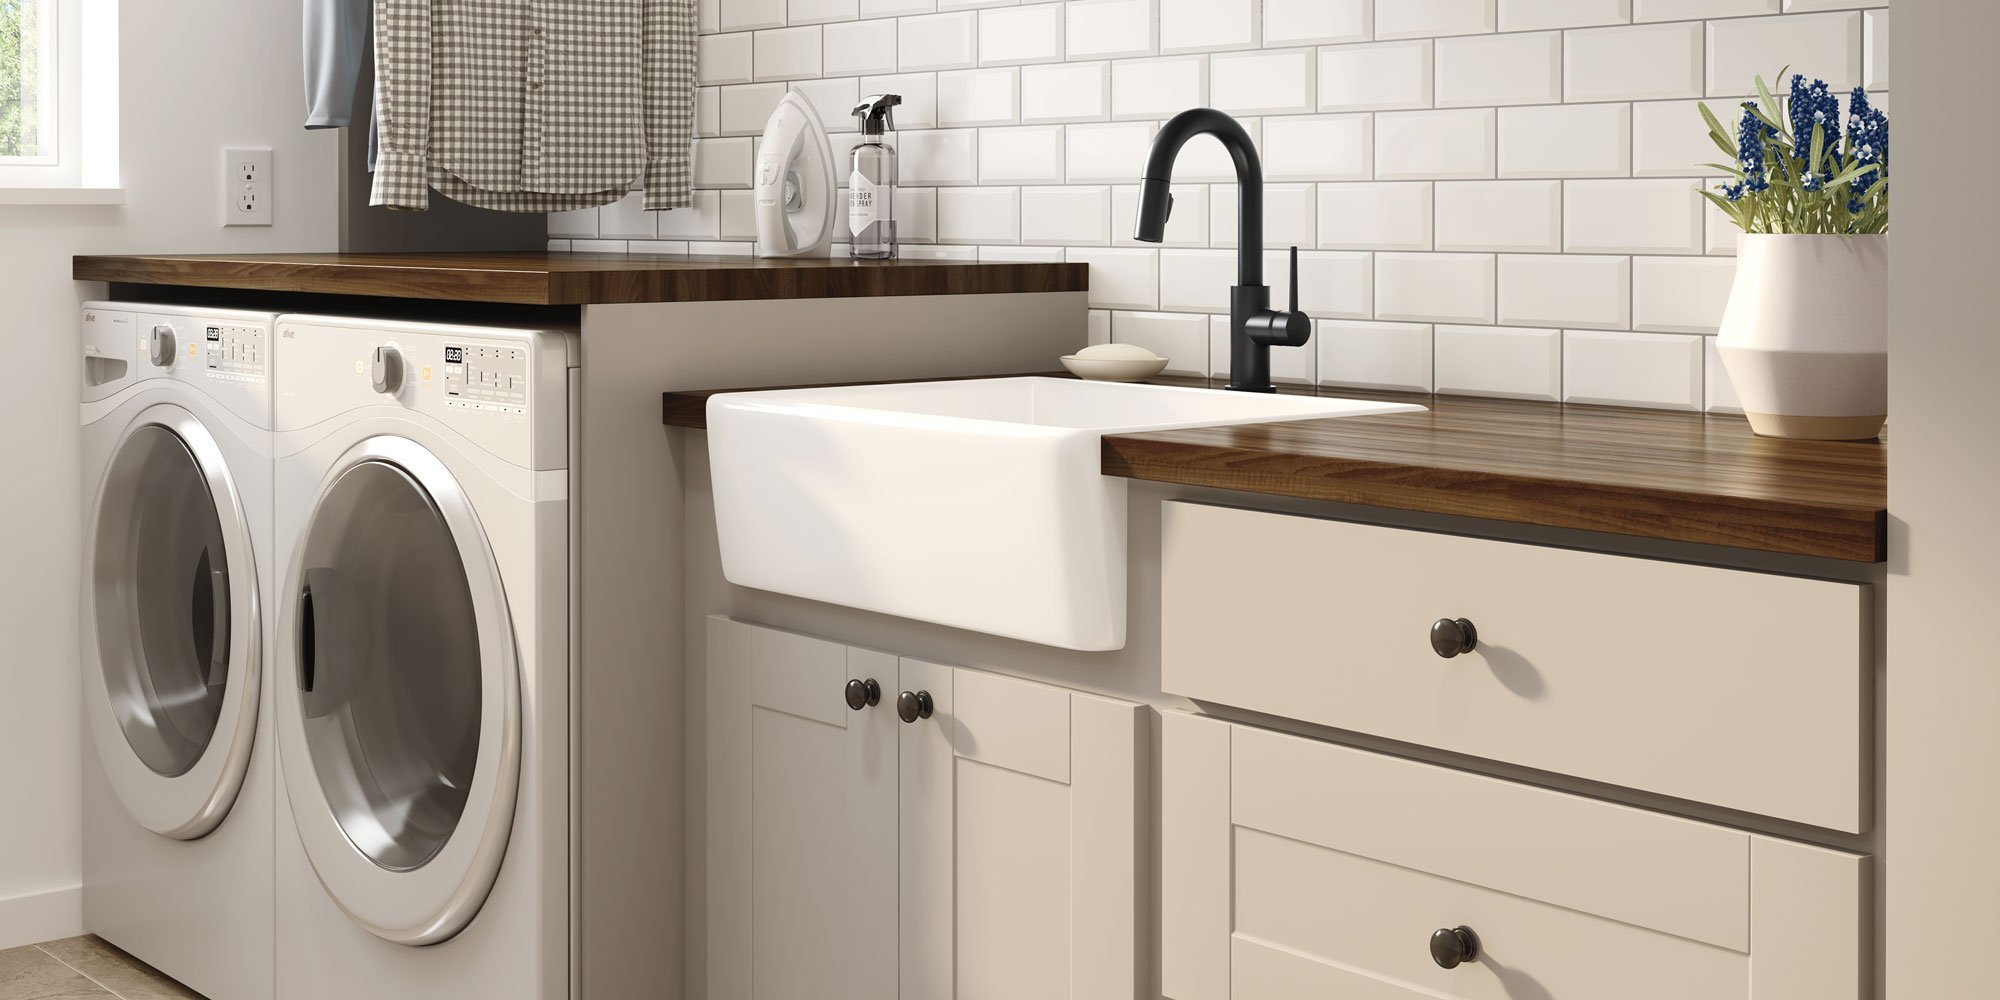 How to Choose the Perfect Laundry Room Sink - Delta Utility Faucet